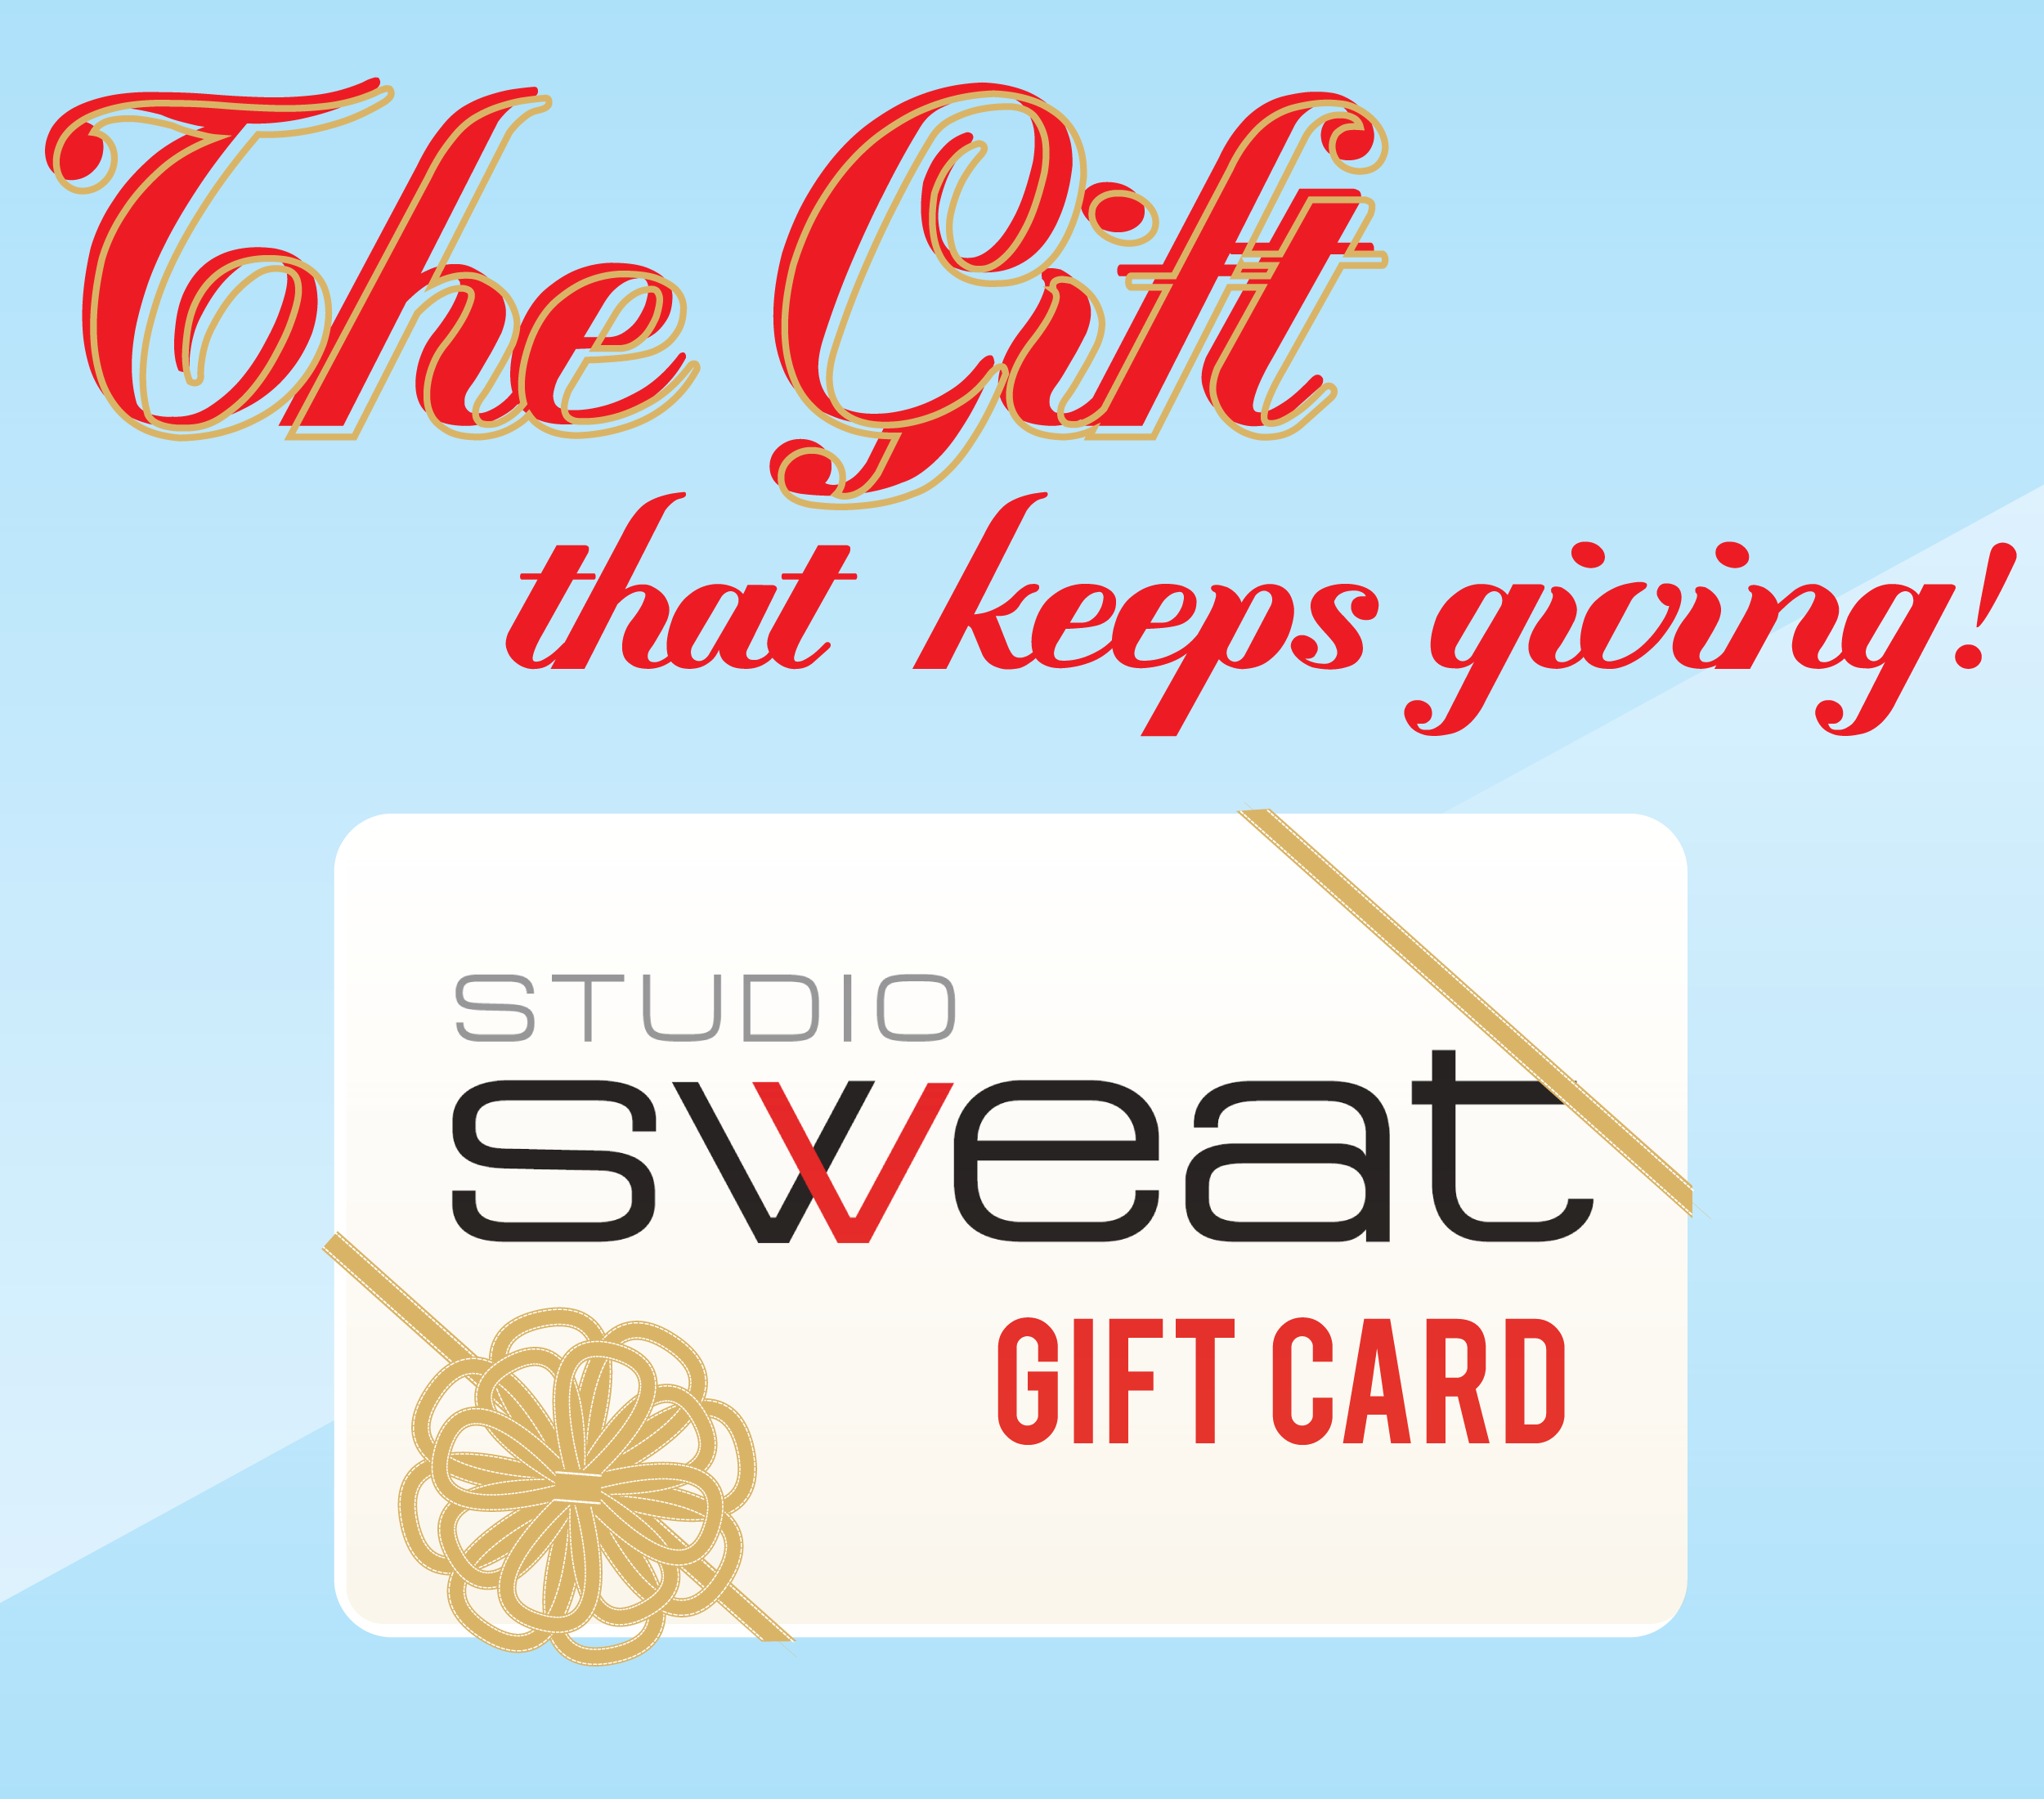 Studio Sweat Gift Card-01